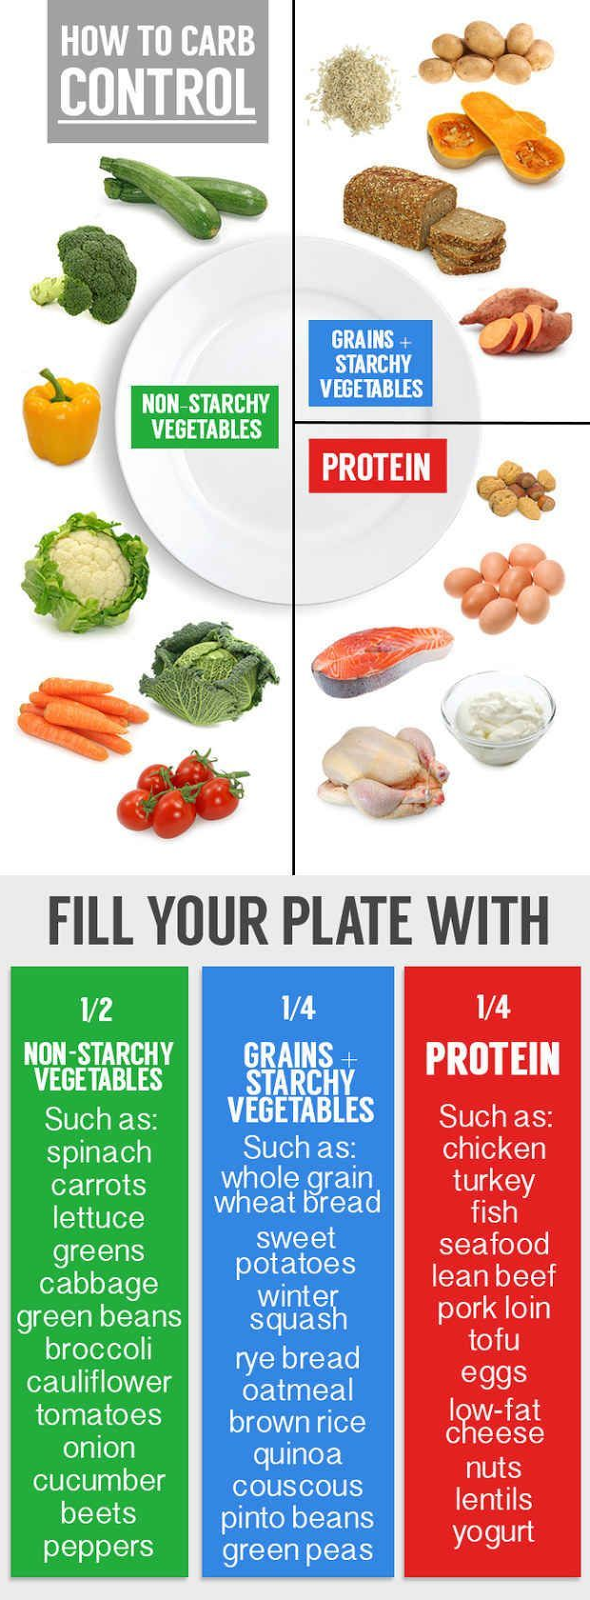 Fill your plate with vegetables and protein, and starch